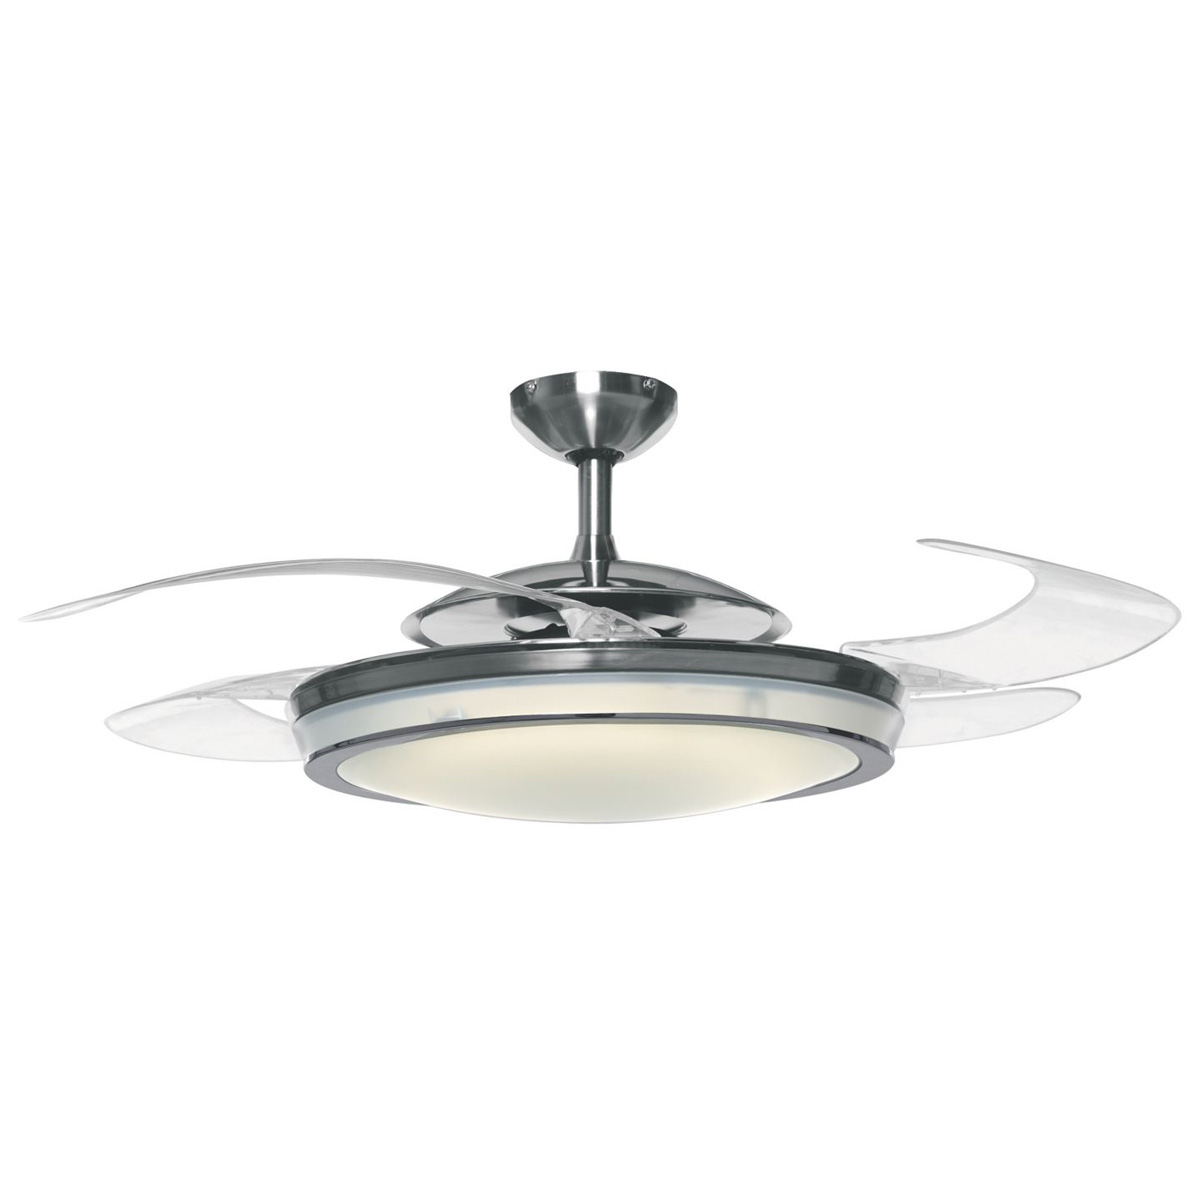 Ceiling Light Fan: Retractable Blade Ceiling Fan / Pendant